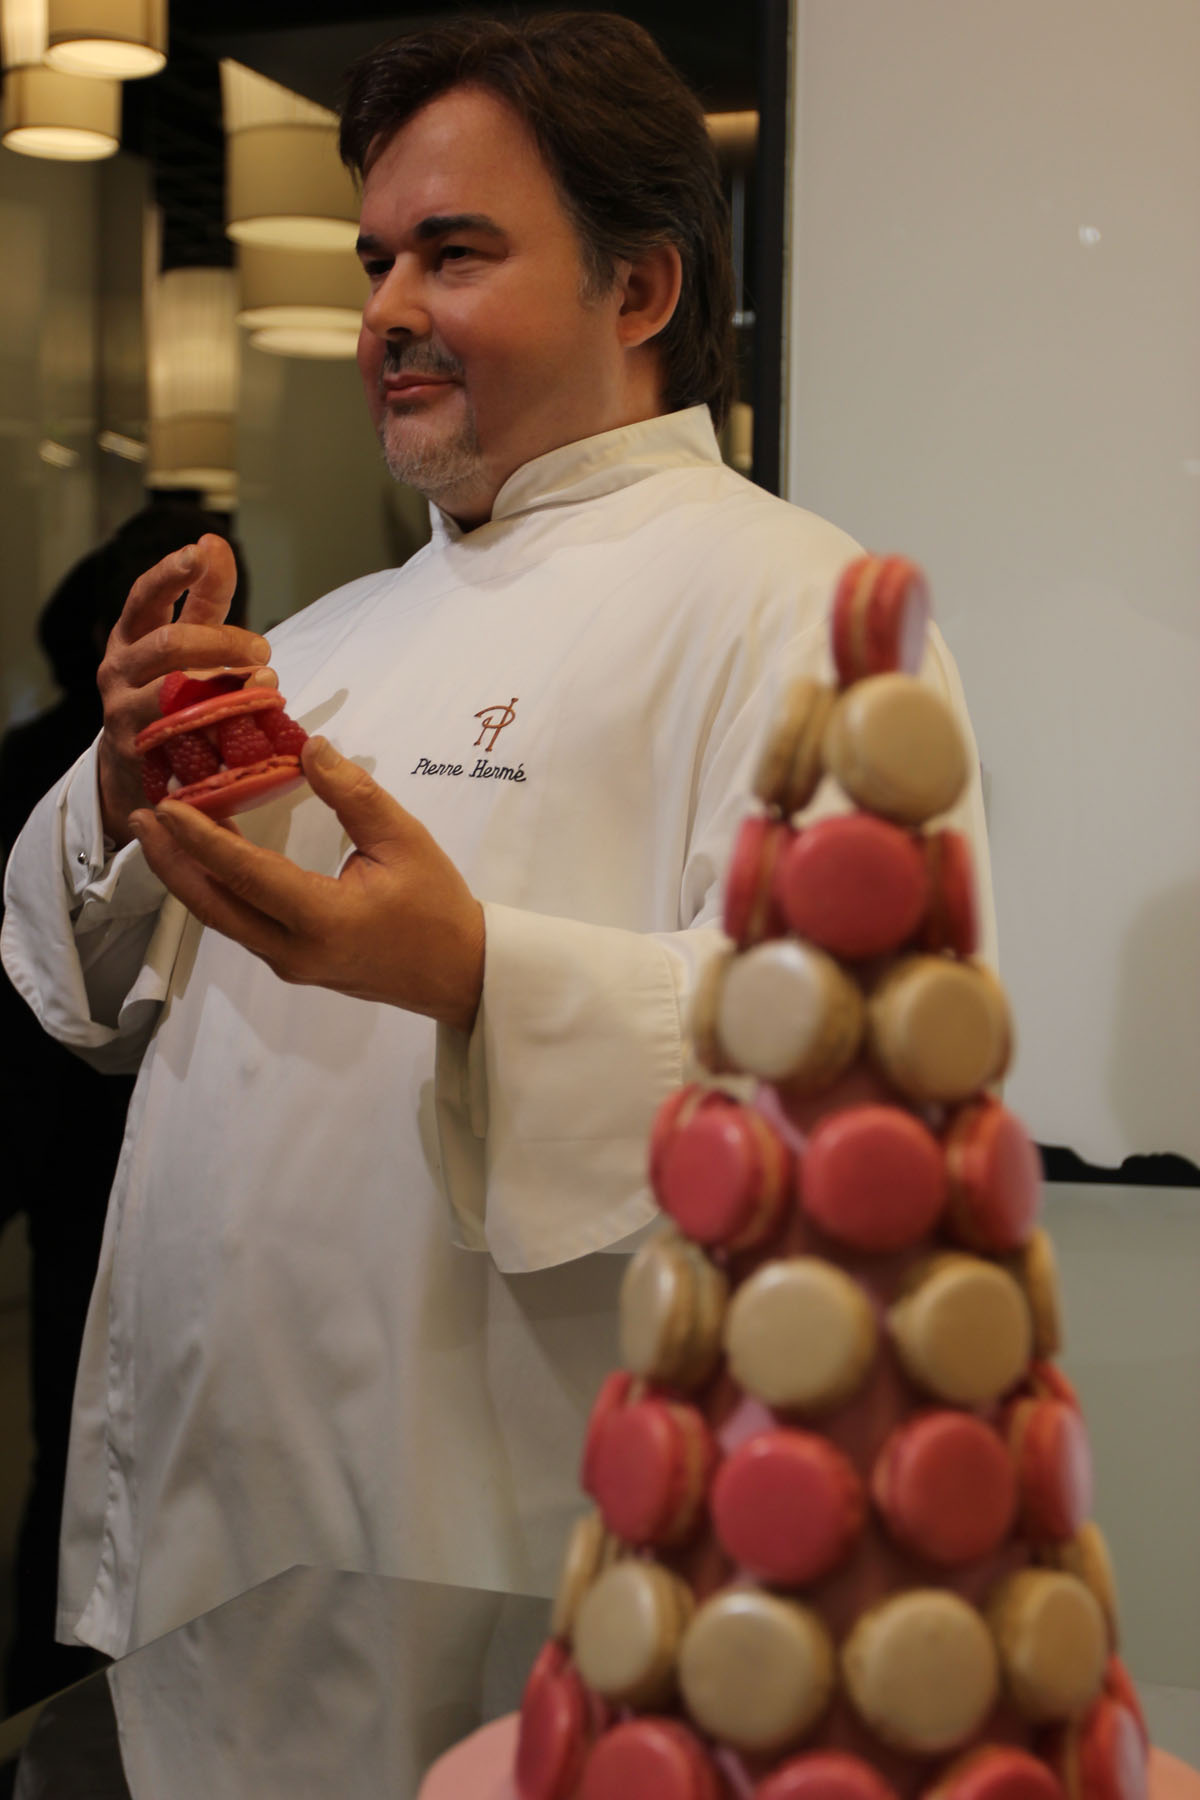 musee-grevin-paris-cire-pierre_herme-macarons-pastry